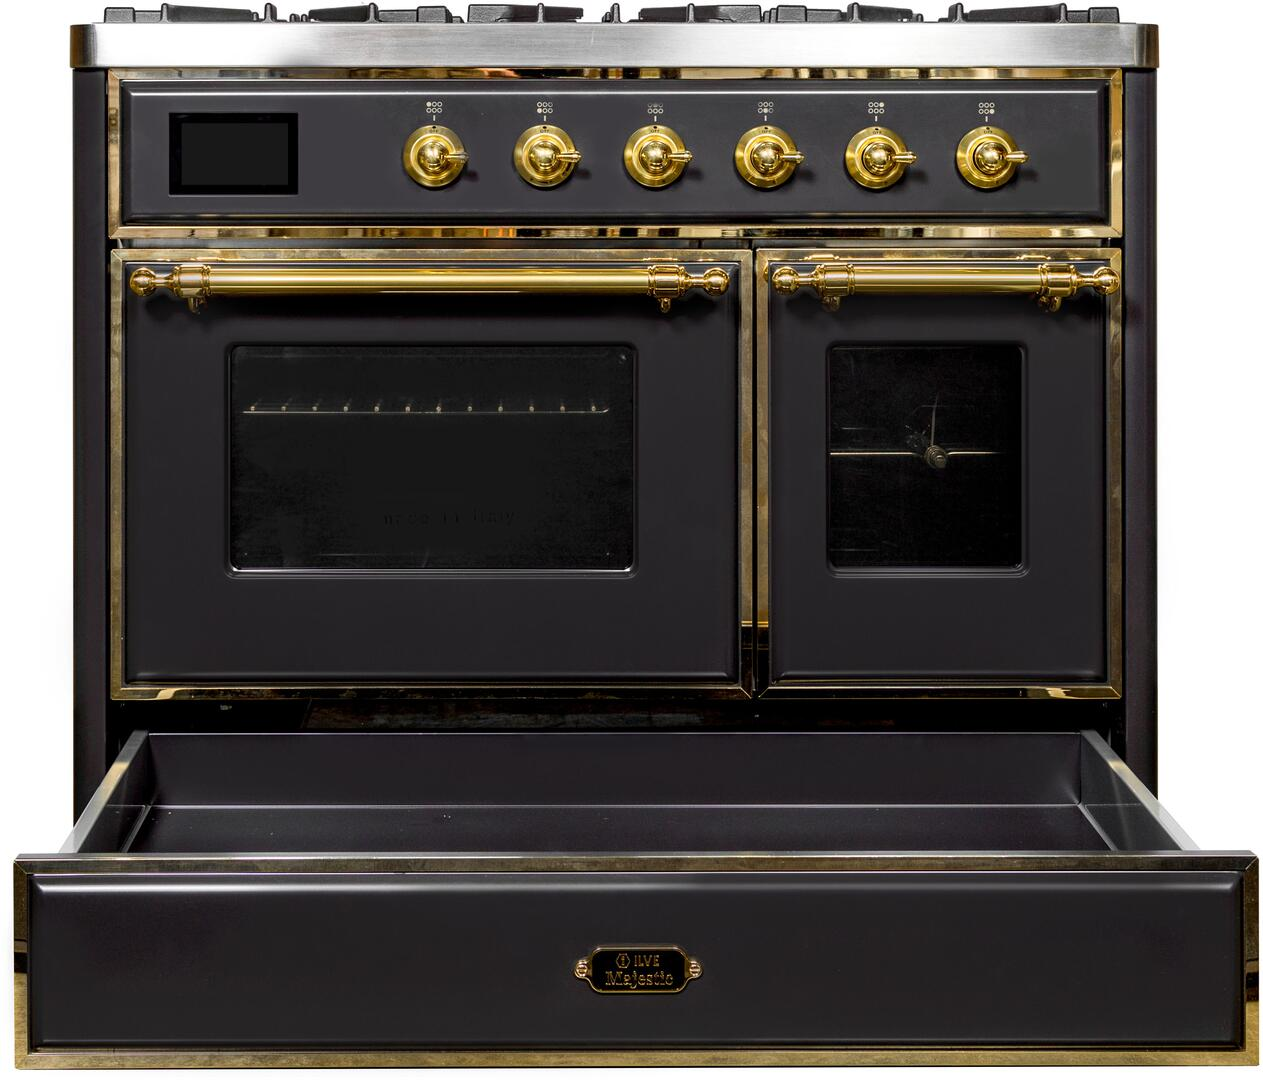 Ilve Majestic II UMD10FDNS3MGG Freestanding Dual Fuel Range Graphite, UMD10FDNS3MGG Front CD OS